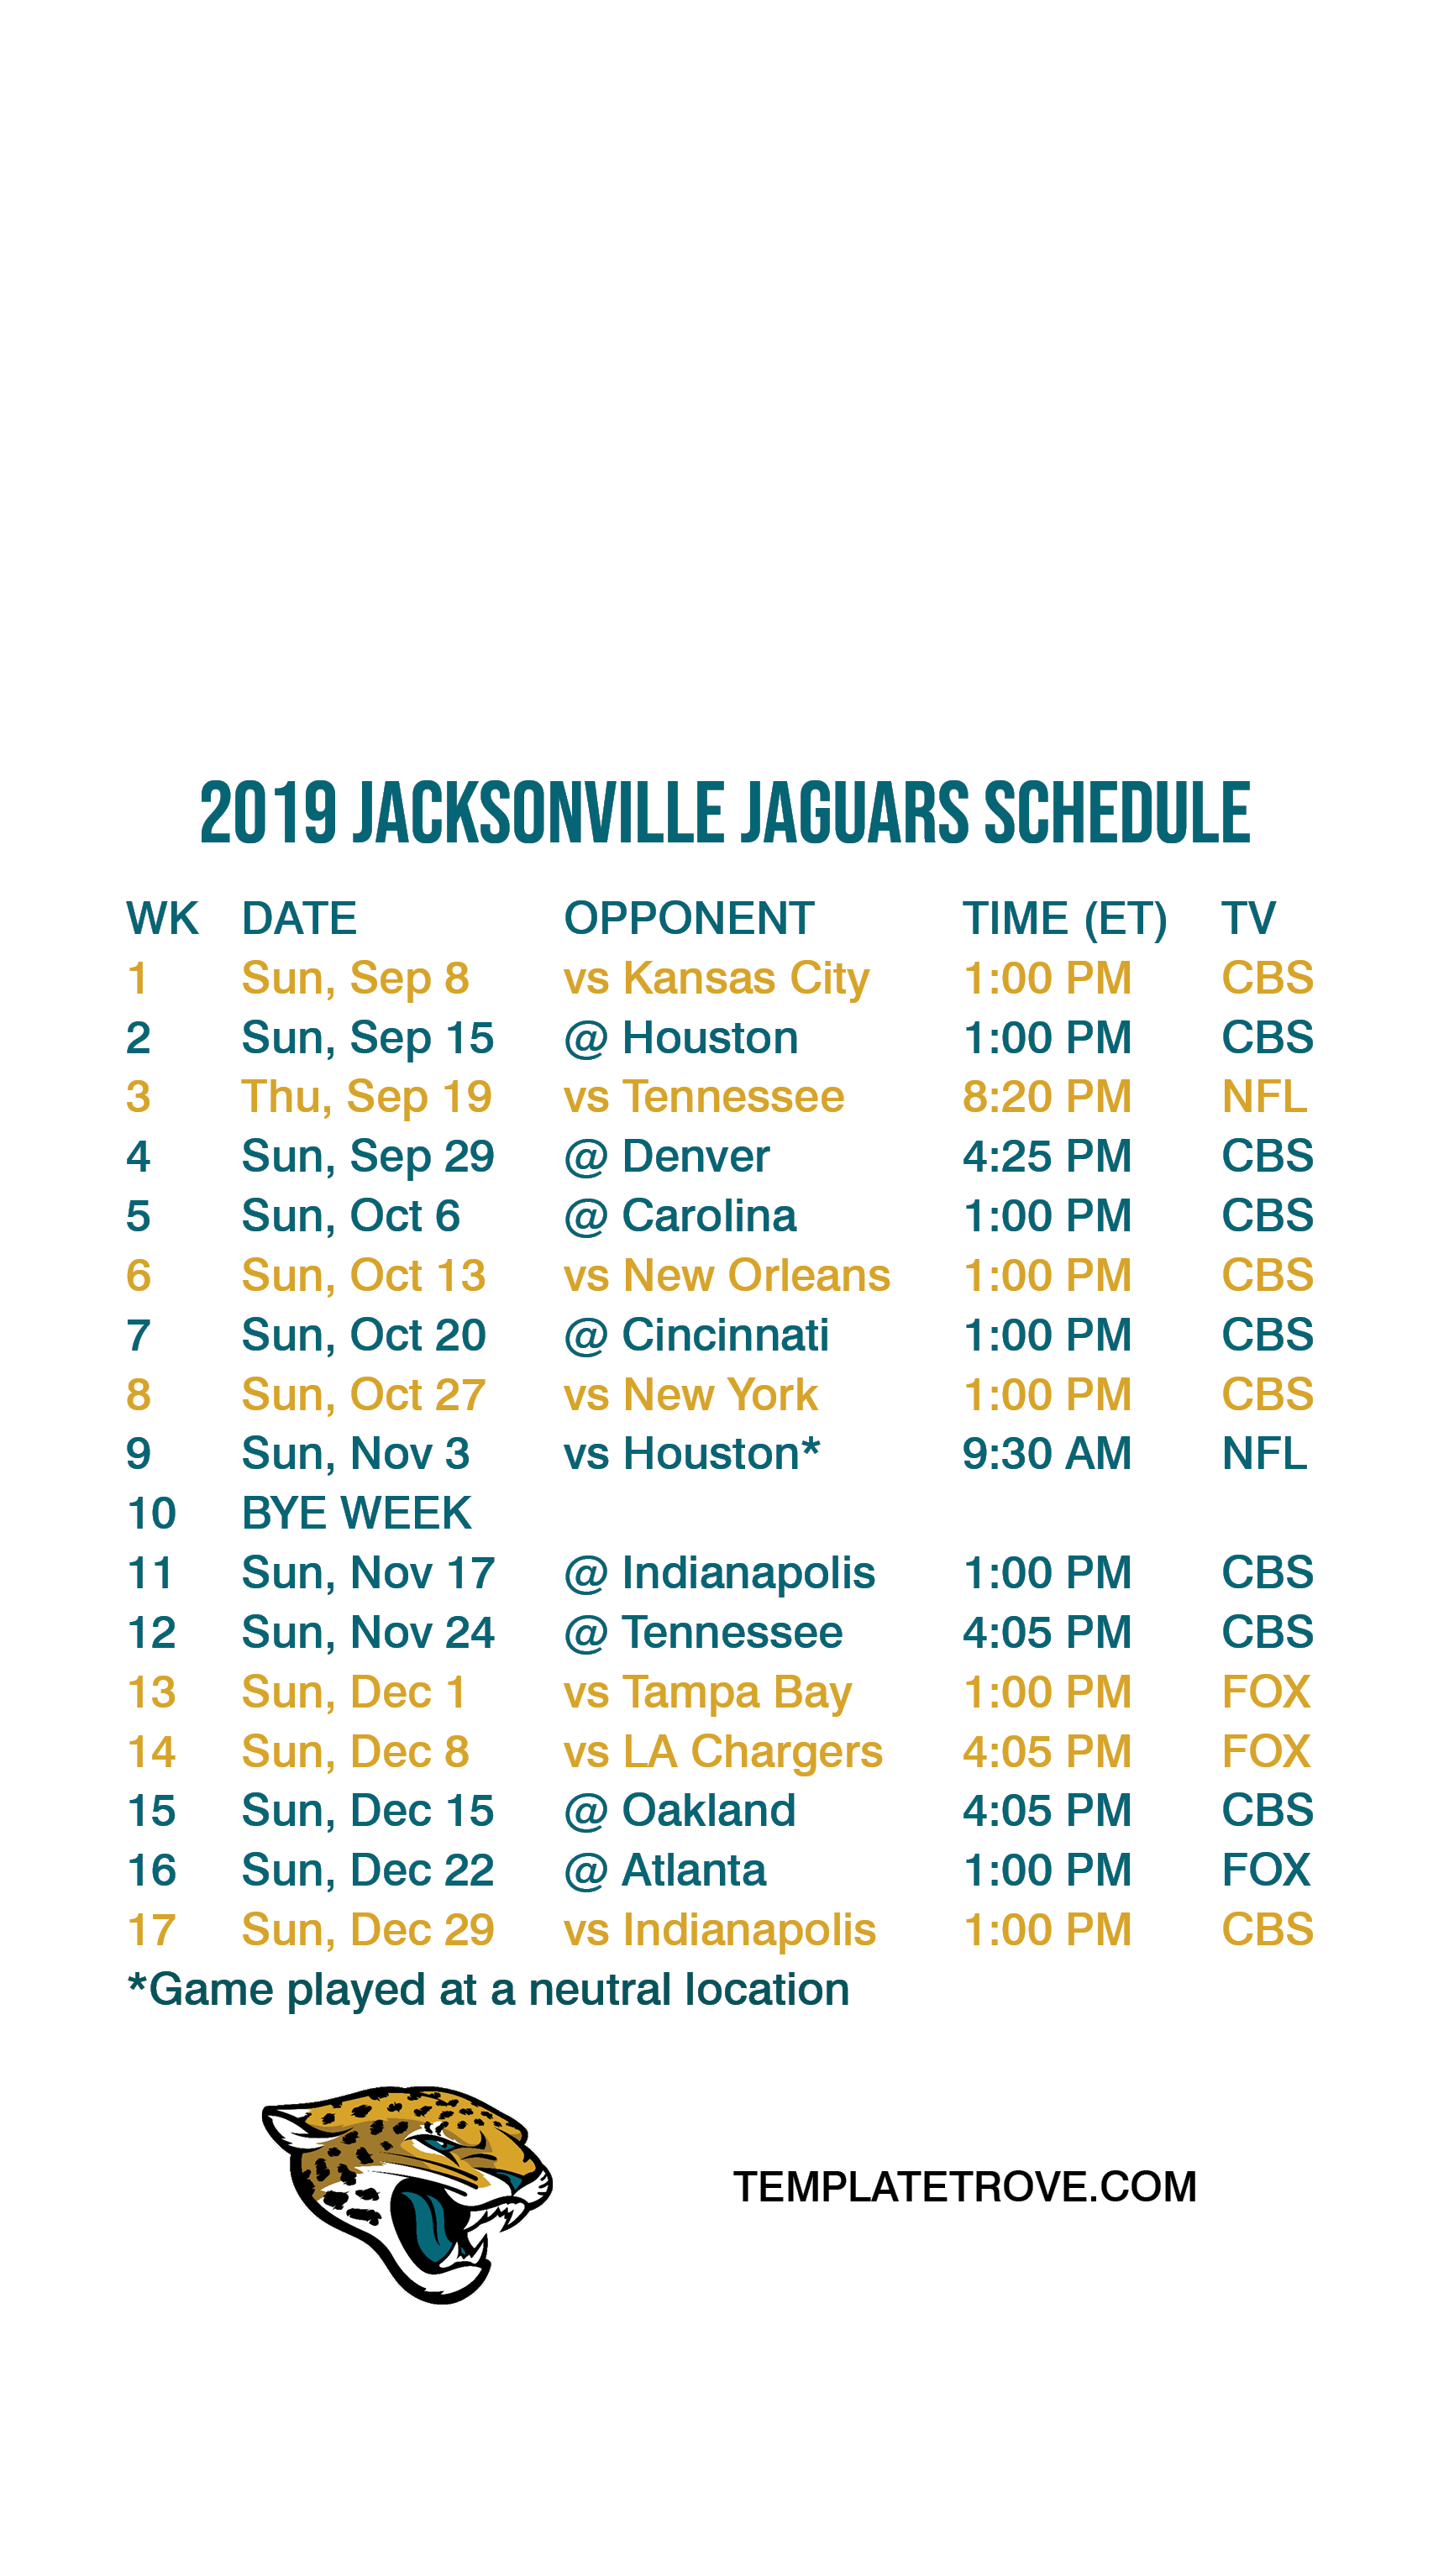 2019 2020 Jacksonville Jaguars Lock Screen Schedule for iPhone 6 7 1725x3067